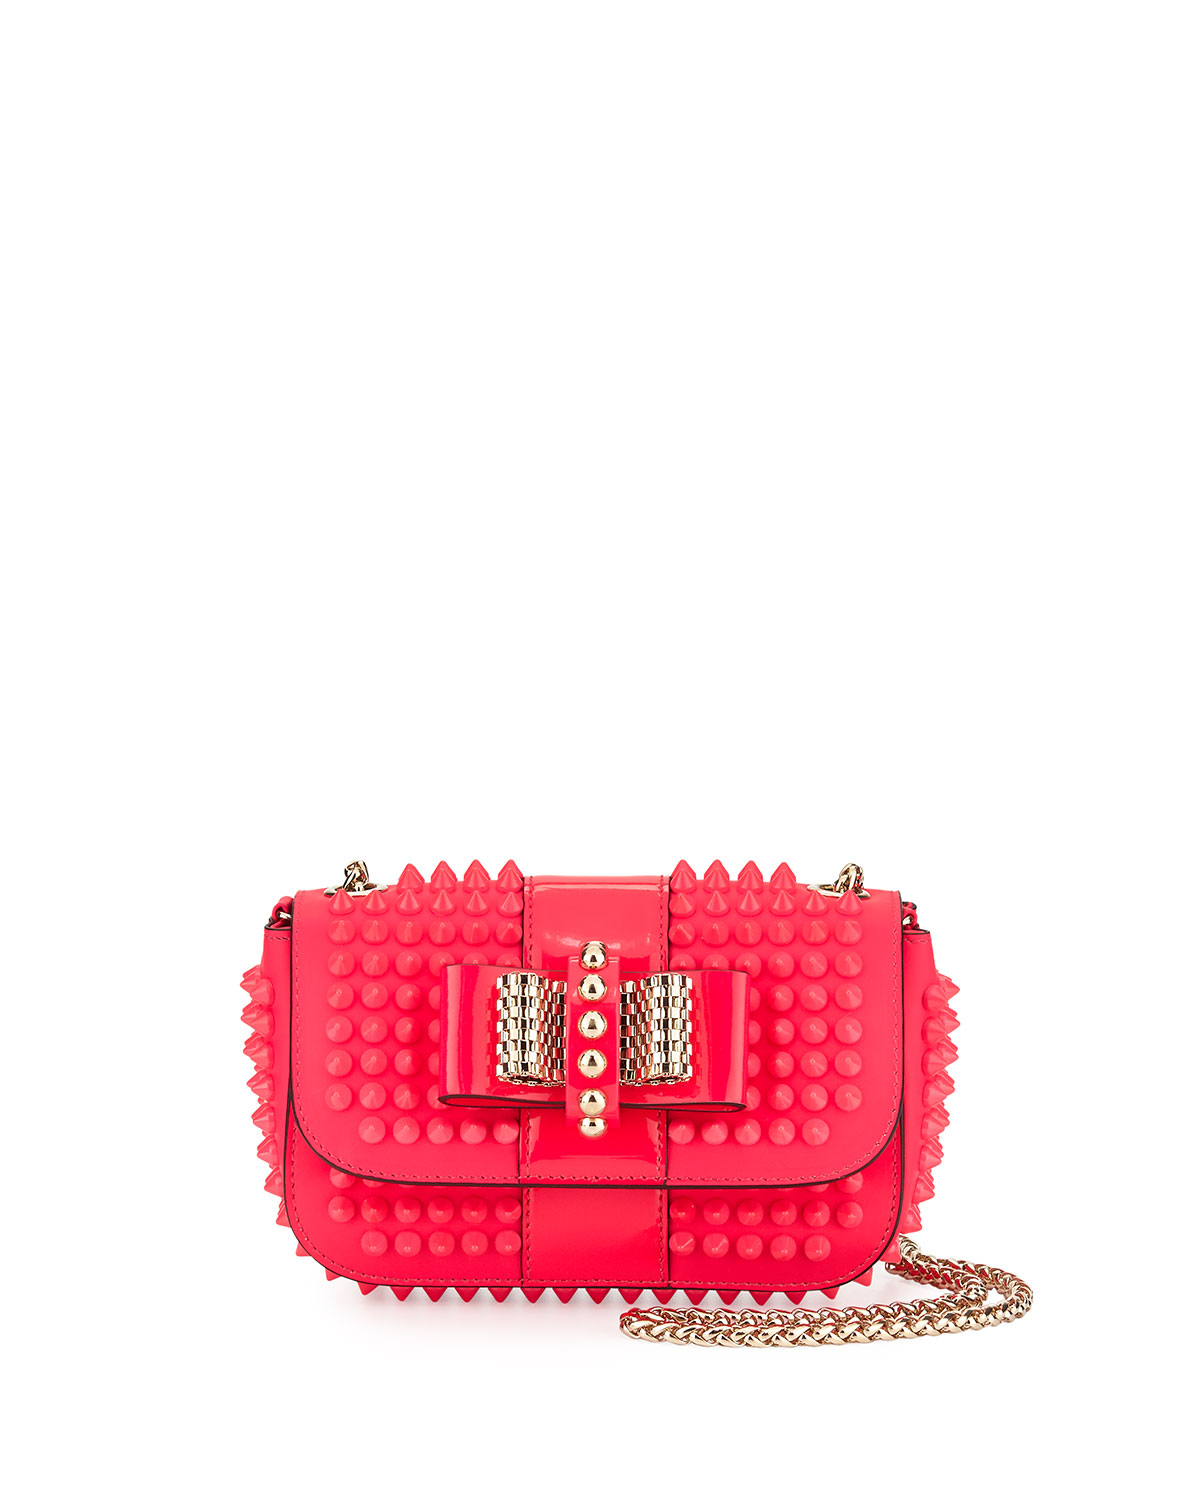 4c2bd9c1df2 Christian Louboutin Sweet Charity Small Cross-Body Bag in Pink - Lyst